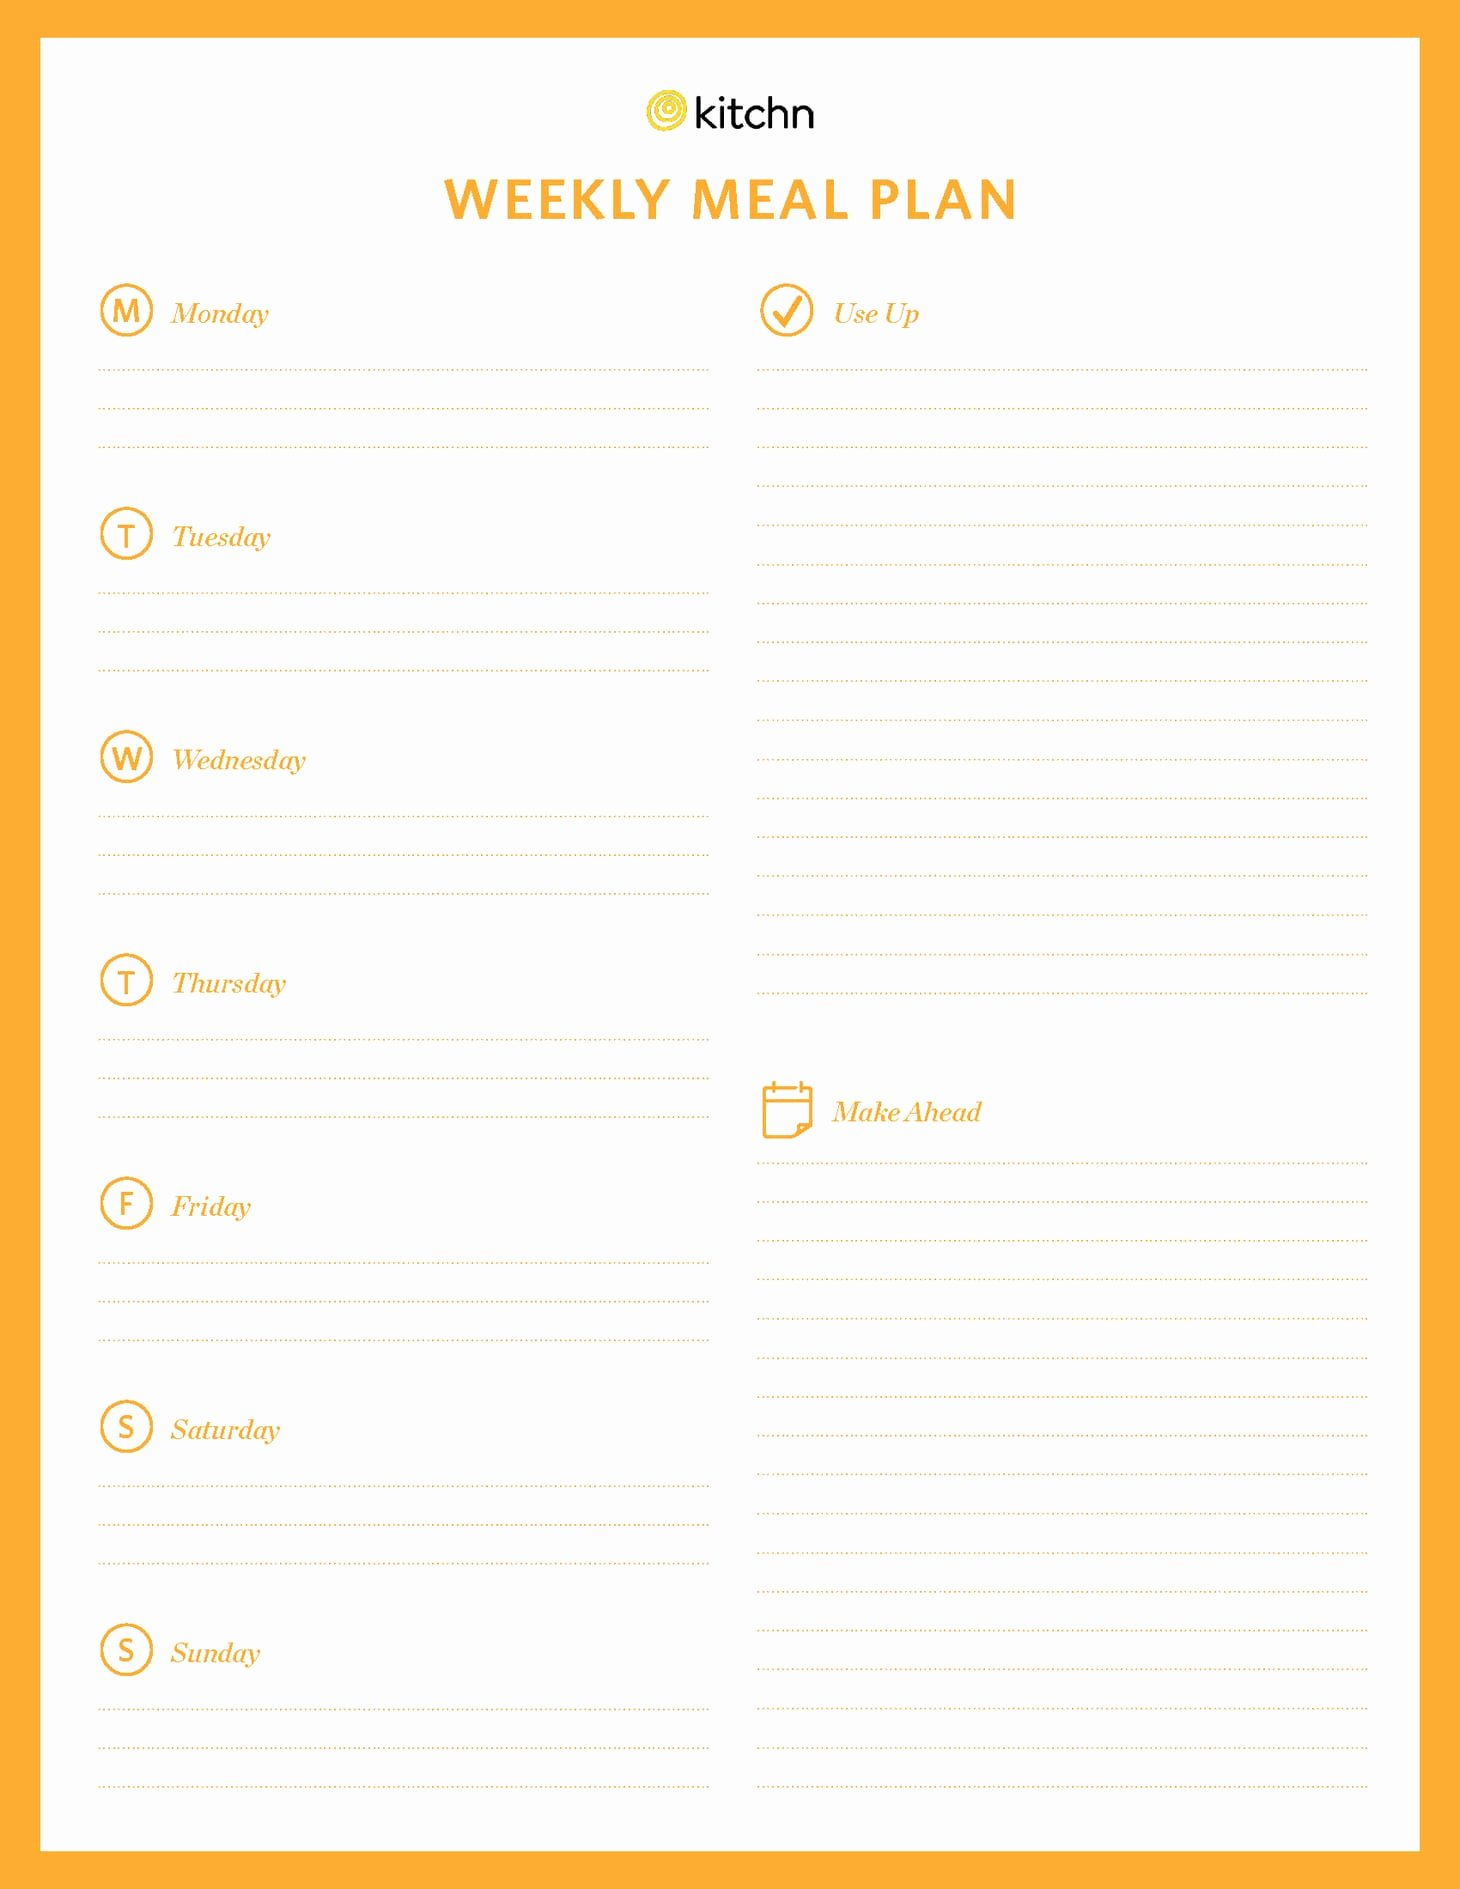 Free Meal Plan Templates New Kitchn S Meal Plan Template